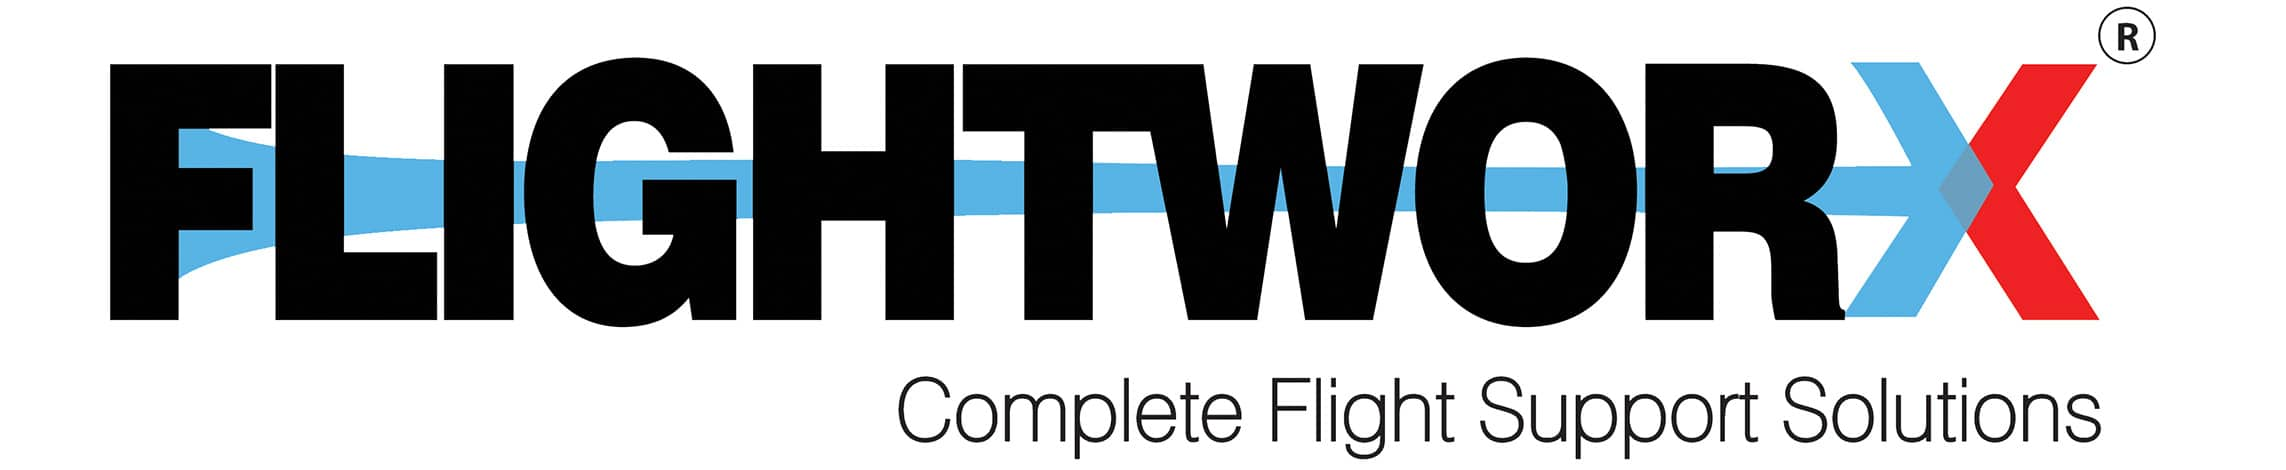 Flightworx